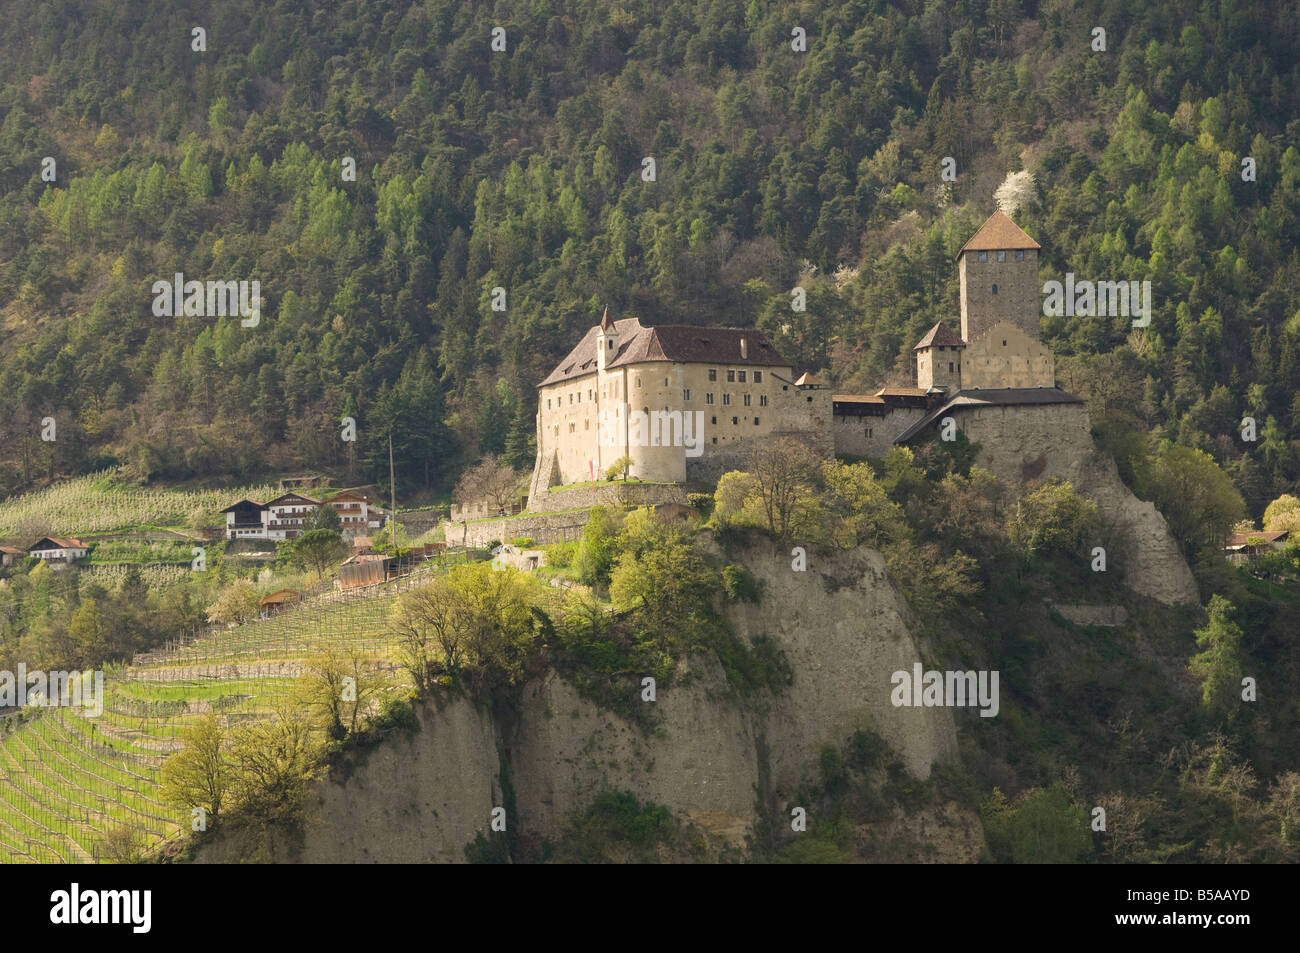 The Castle at Dorf Tyrol, Sud Tyrol, Italy, Europe - Stock Image